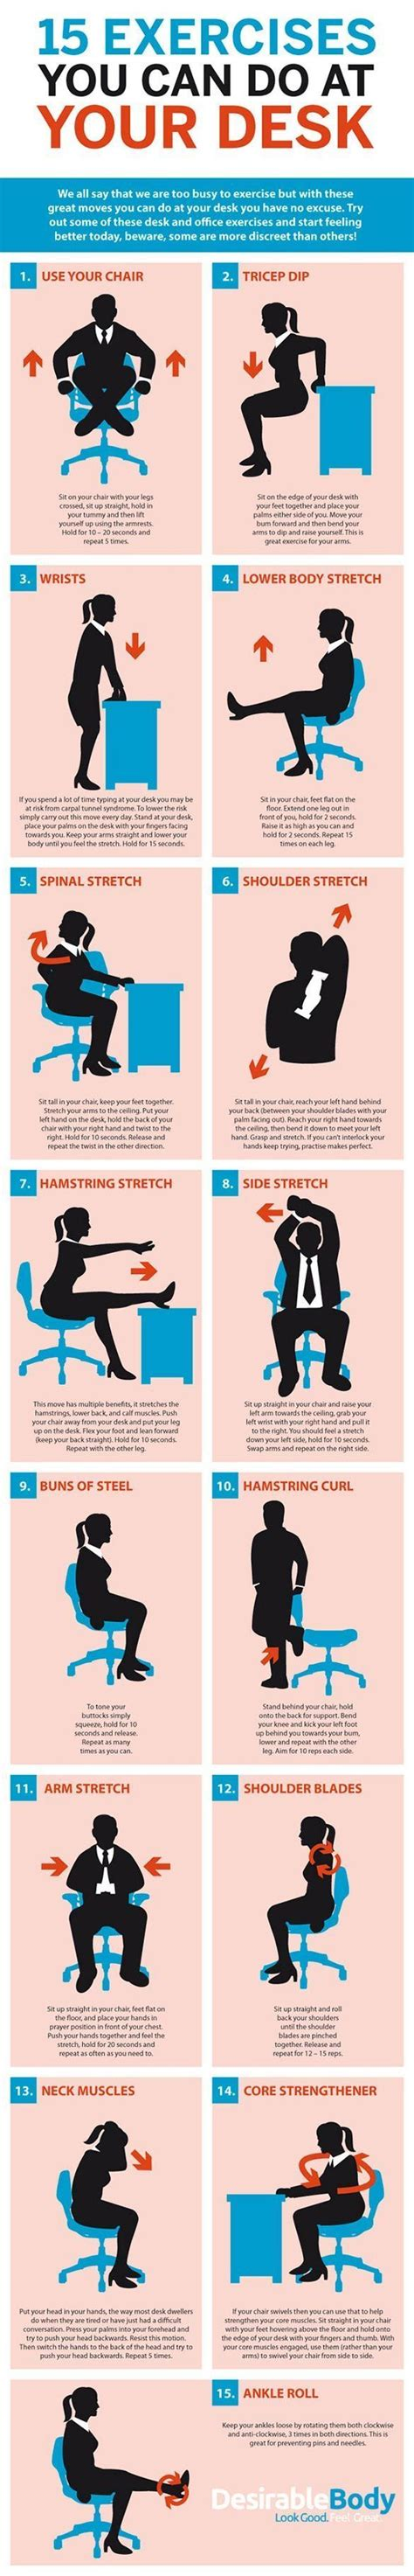 Office Workouts At Your Desk 15 Exercises You Can Do At Your Desk Exercises Workout And